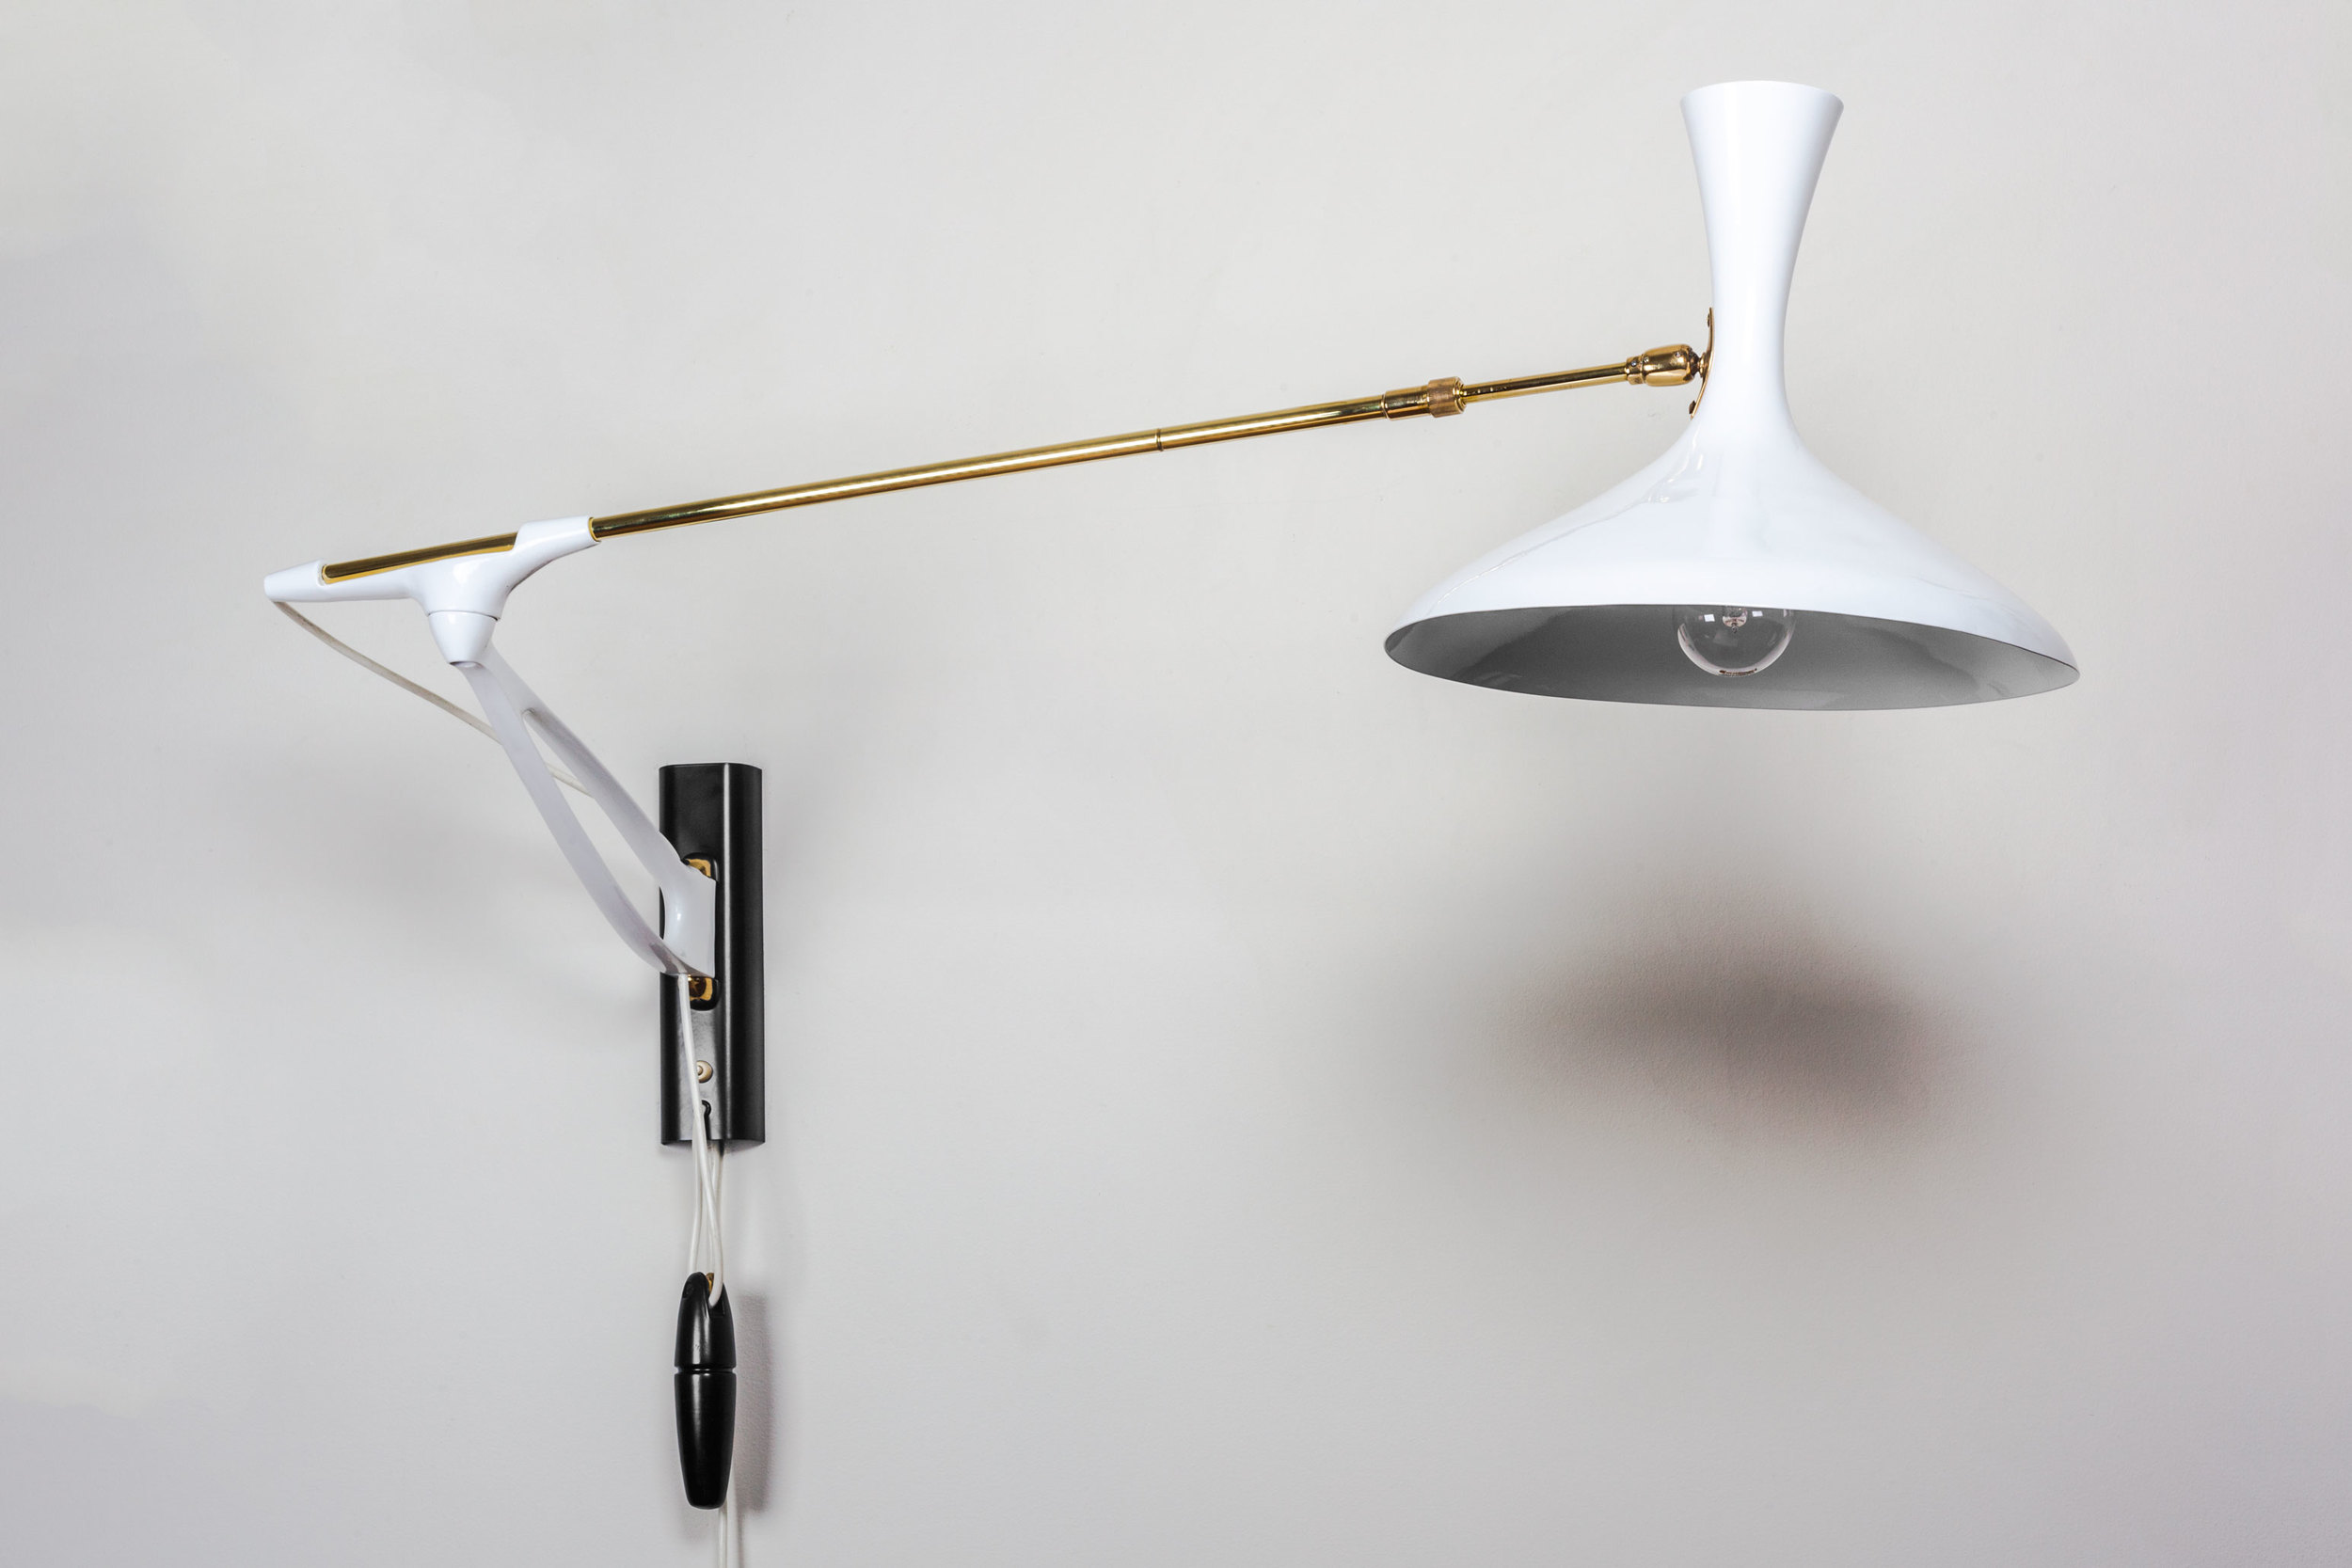 Bauhaus Free Form Wall Lamp made in Germany